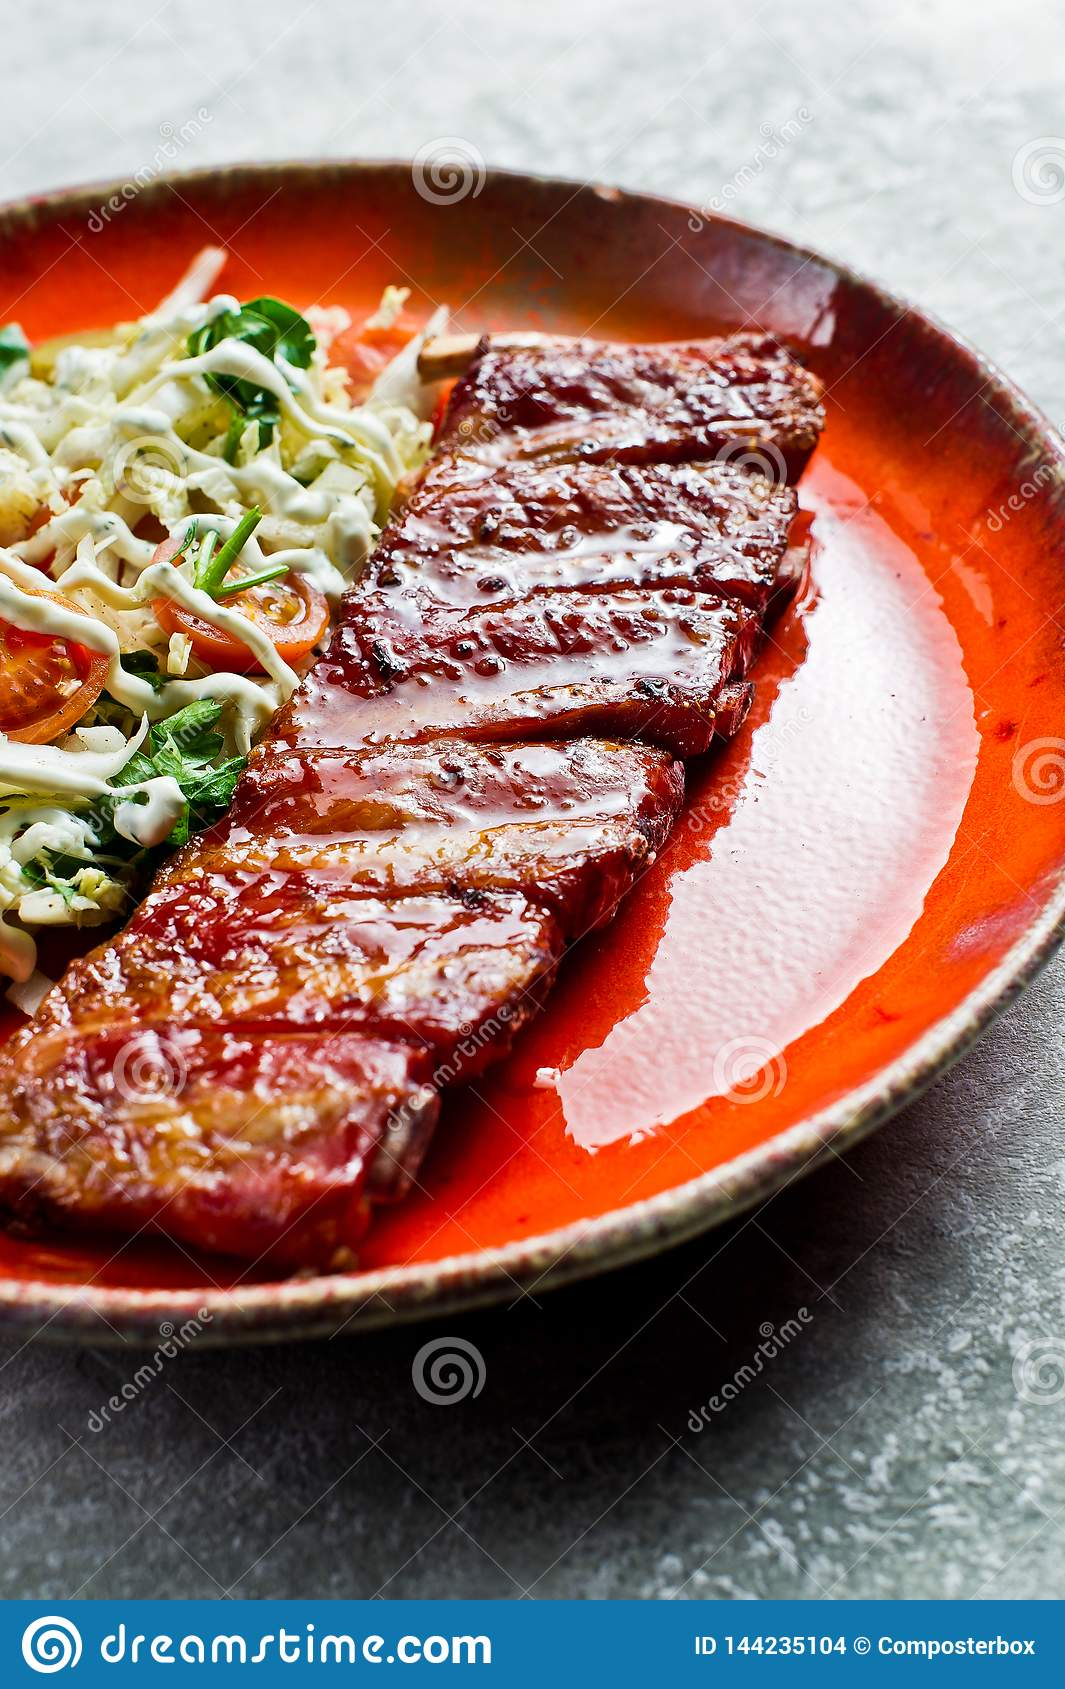 Traditional American barbecue pork ribs with a side dish of green salad. Grey backgroun